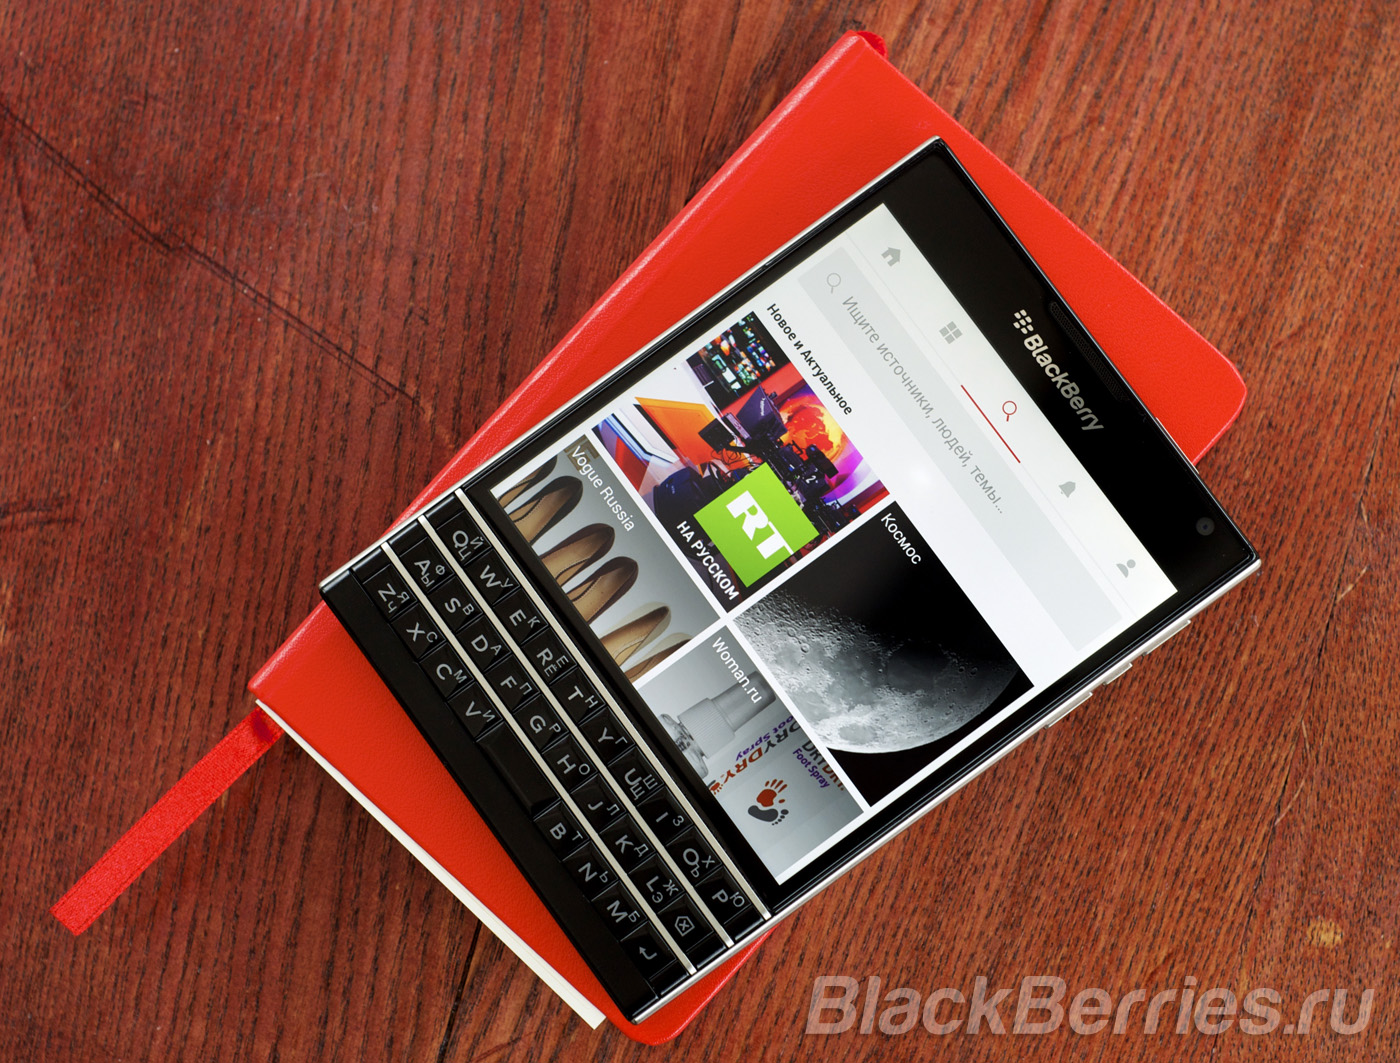 BlackBerry-Passport-Flipboard-9